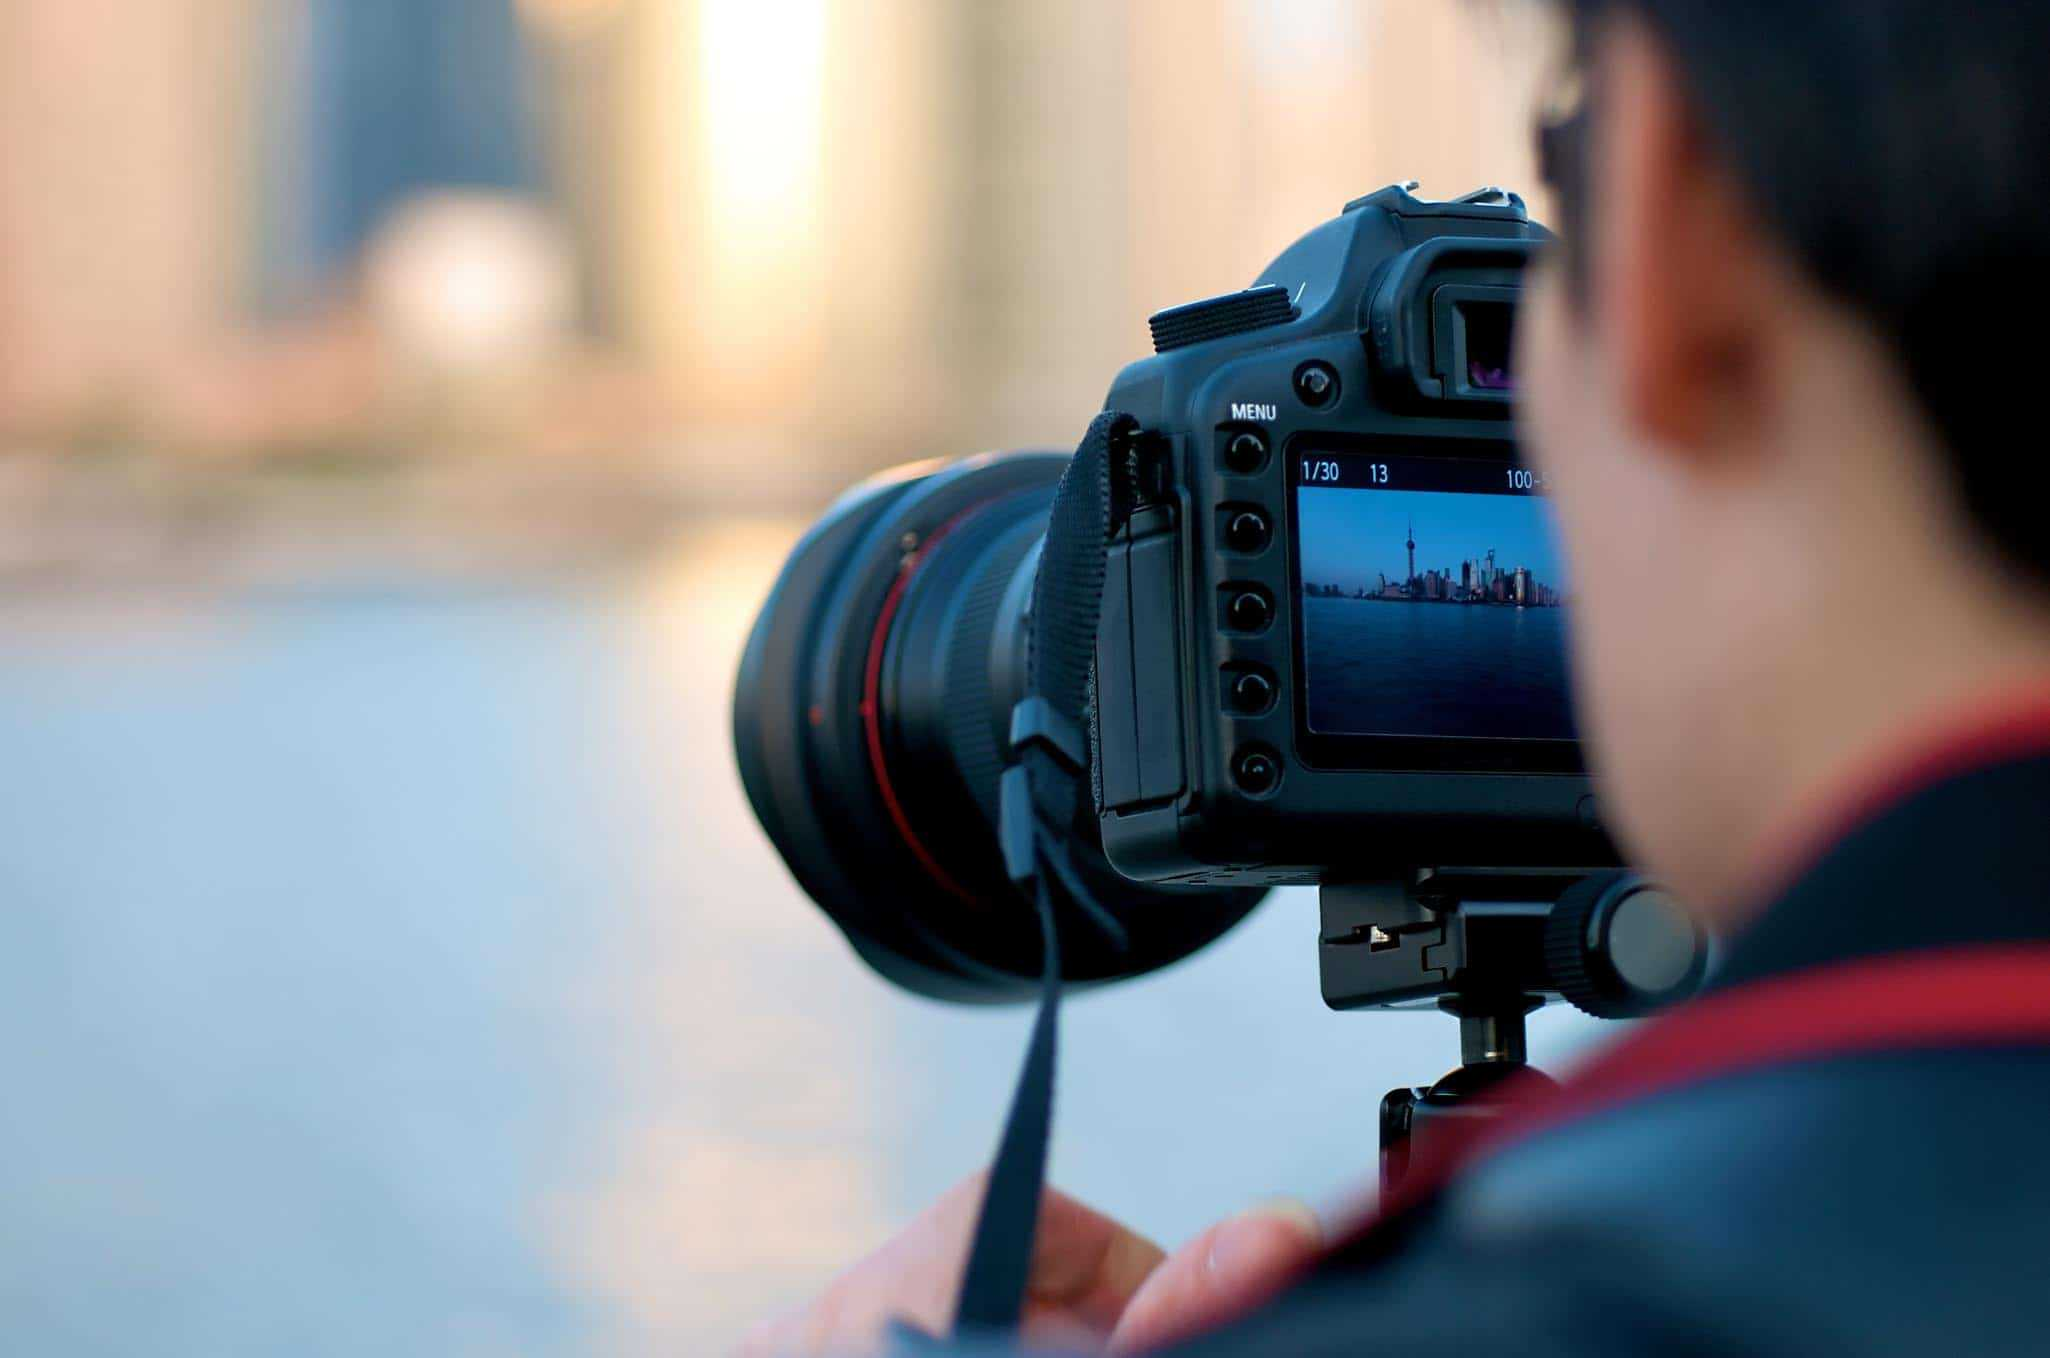 Benefits of DSLR Cameras vs other Cams (& Why DSLR is BEST)